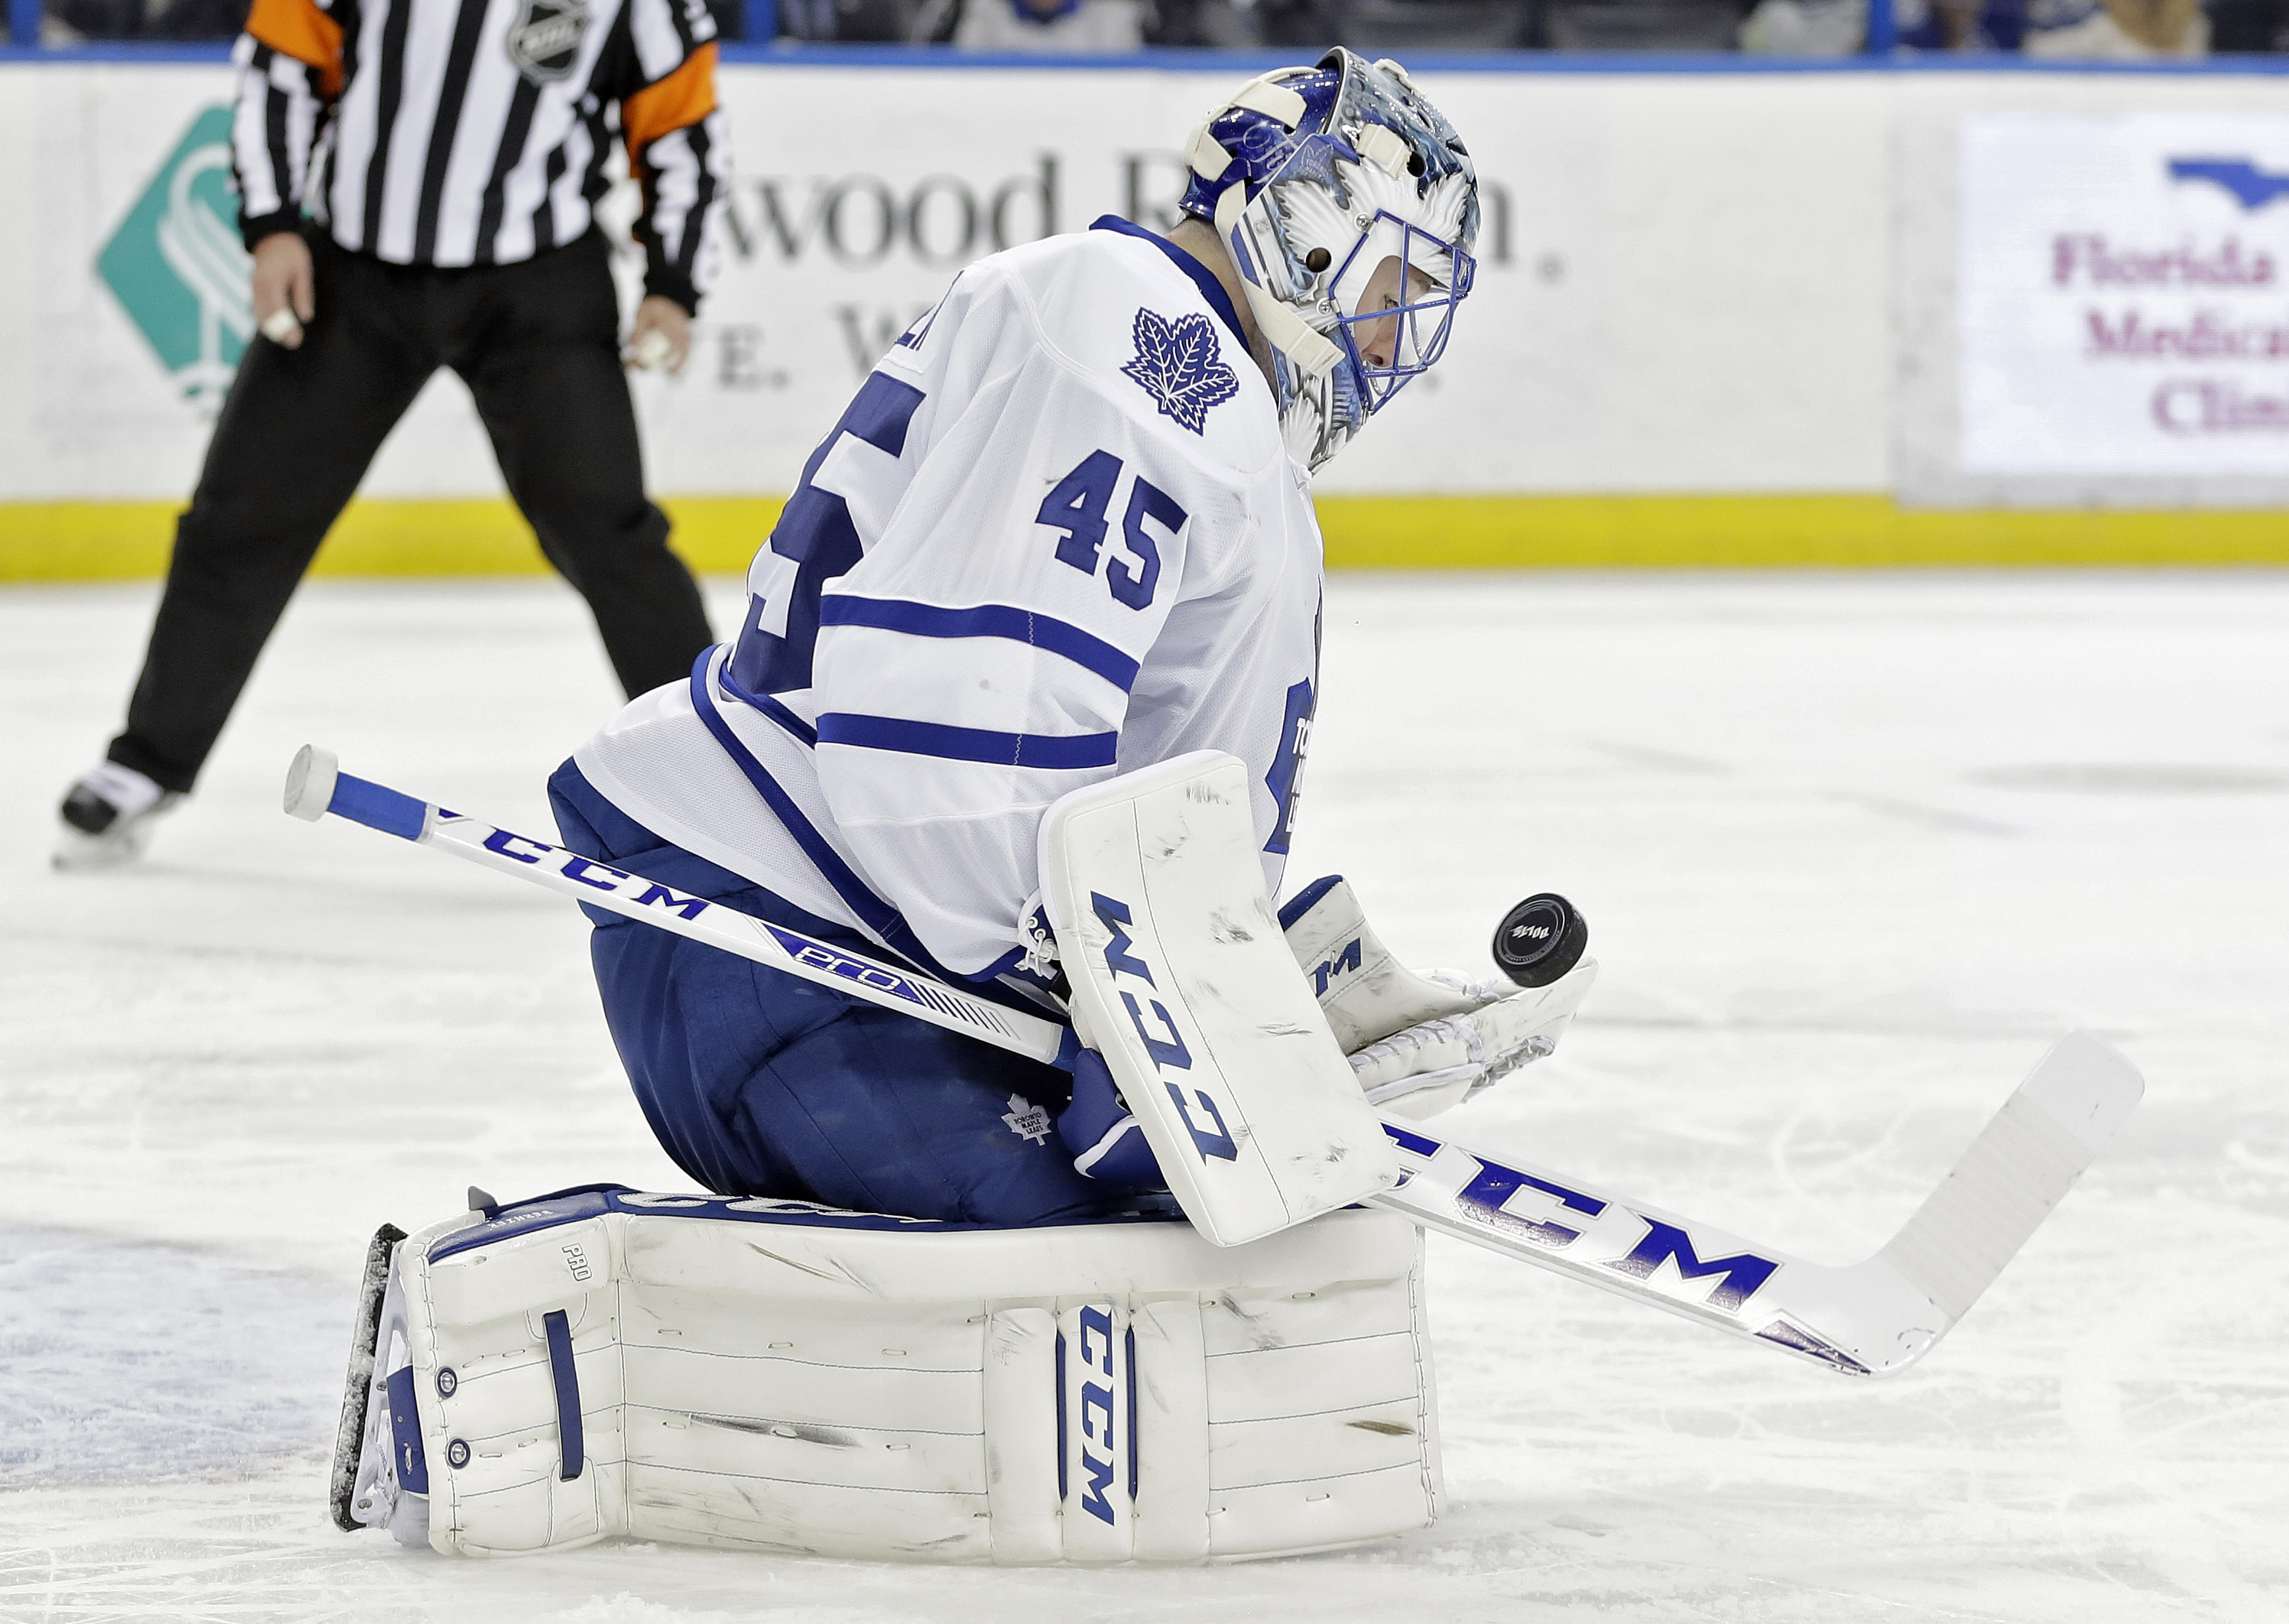 Toronto Maple Leafs goalie Jonathan Bernier (45) makes a save on a shot by the Tampa Bay Lightning during the second period of an NHL hockey game, Wednesday, Jan. 27, 2016, in Tampa, Fla. (AP Photo/Chris O'Meara)